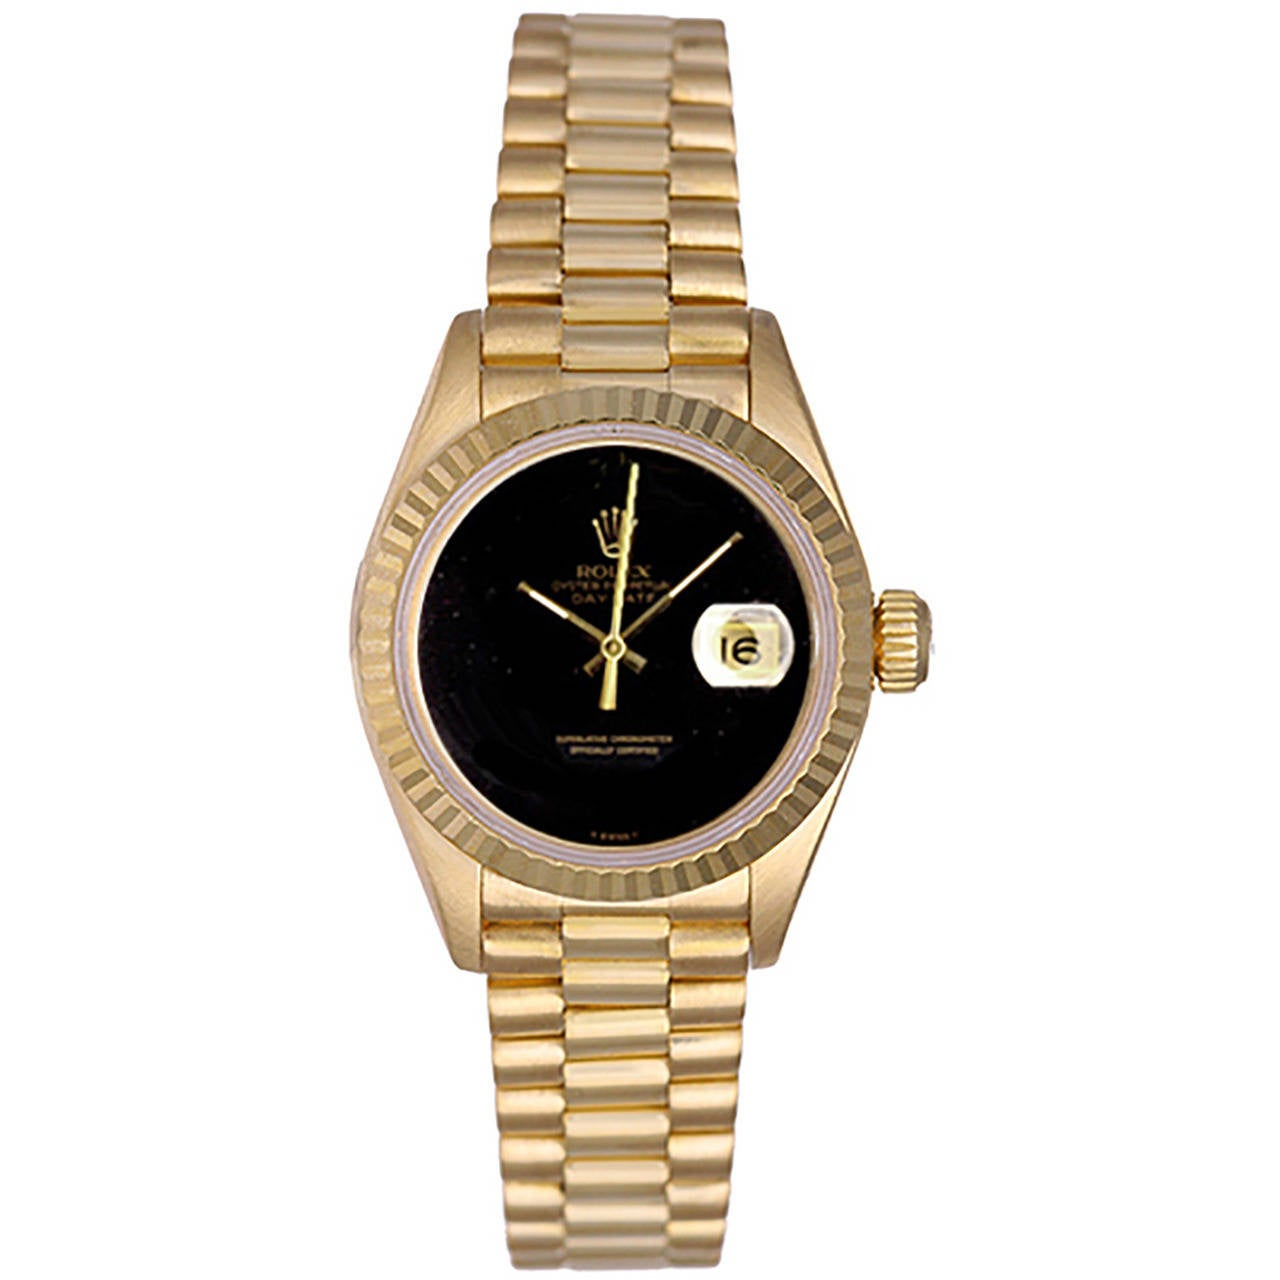 Rolex Lady's Yellow Gold President Wristwatch Ref 69178